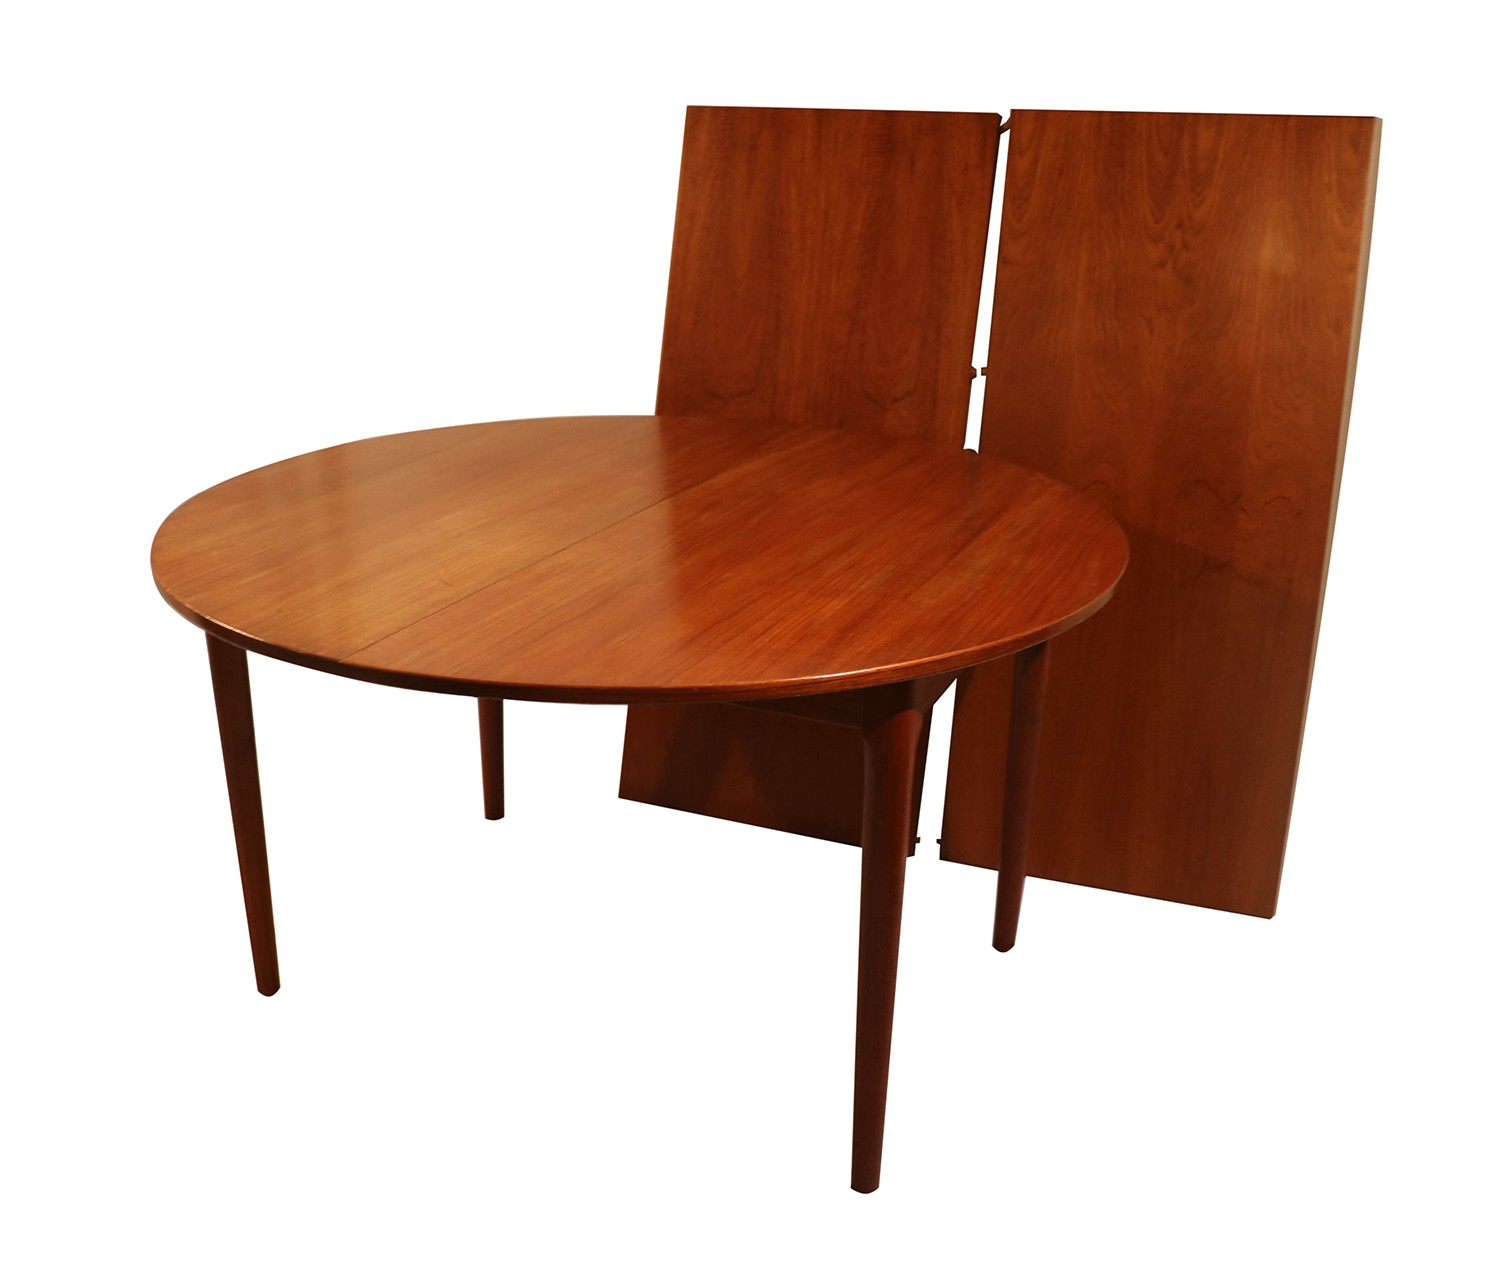 Modern Expandable Dining Table: Danish Modern Teak Expandable Dining Table